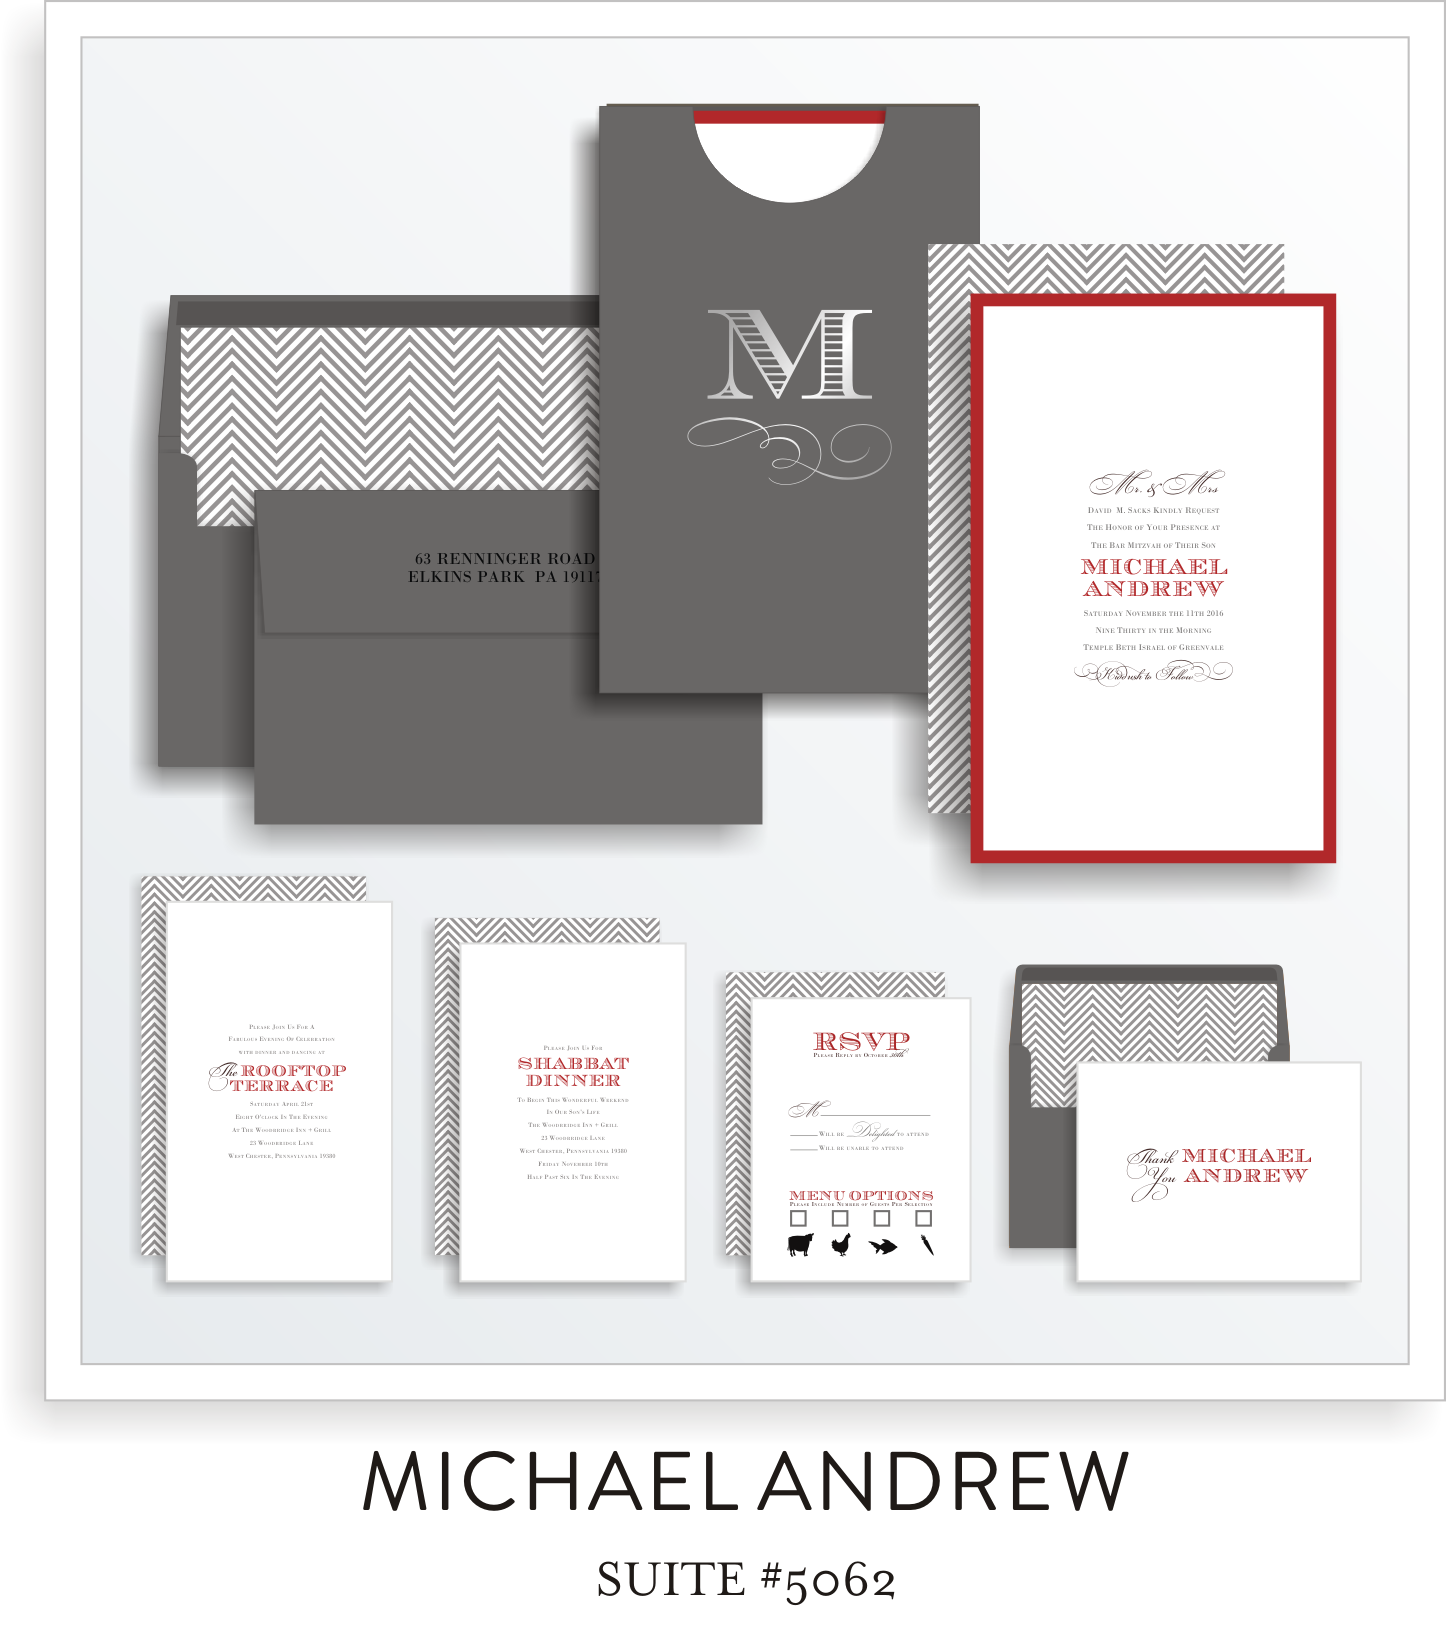 Copy of bar mitzvah invitation suite 5062